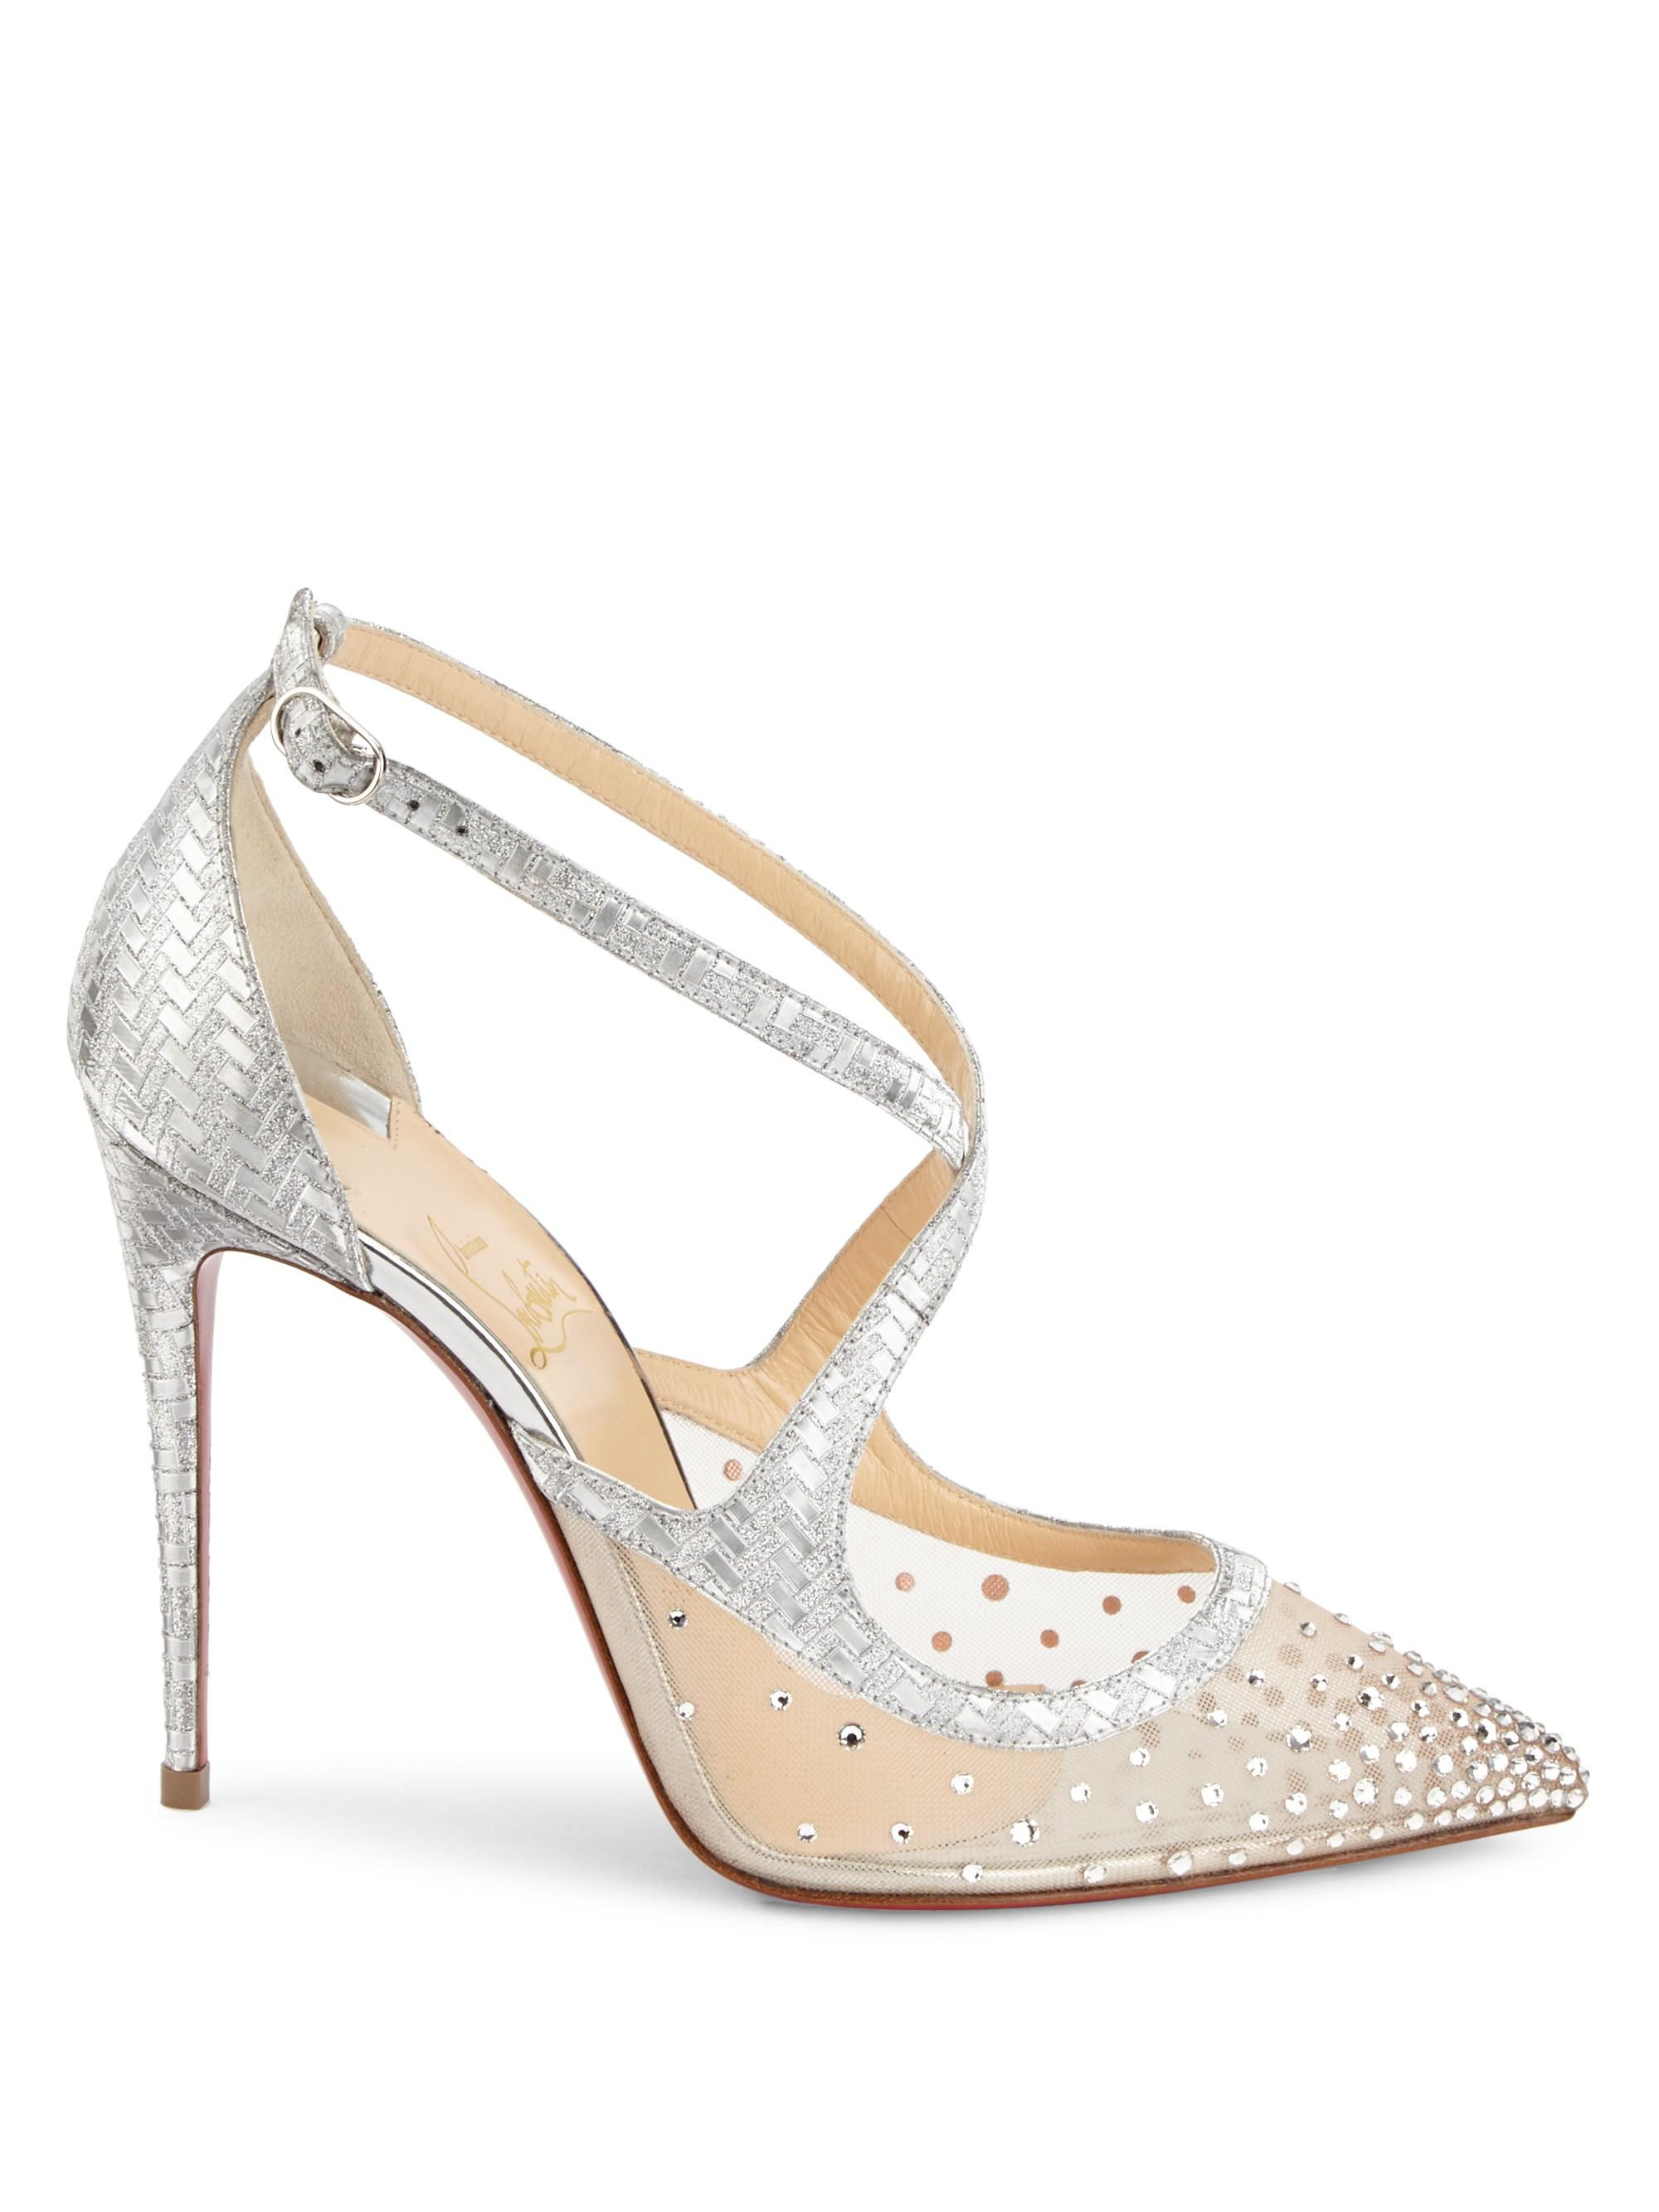 detailed look 57474 96360 Christian Louboutin Twistissima Strass 100 Metallic Leather Pumps